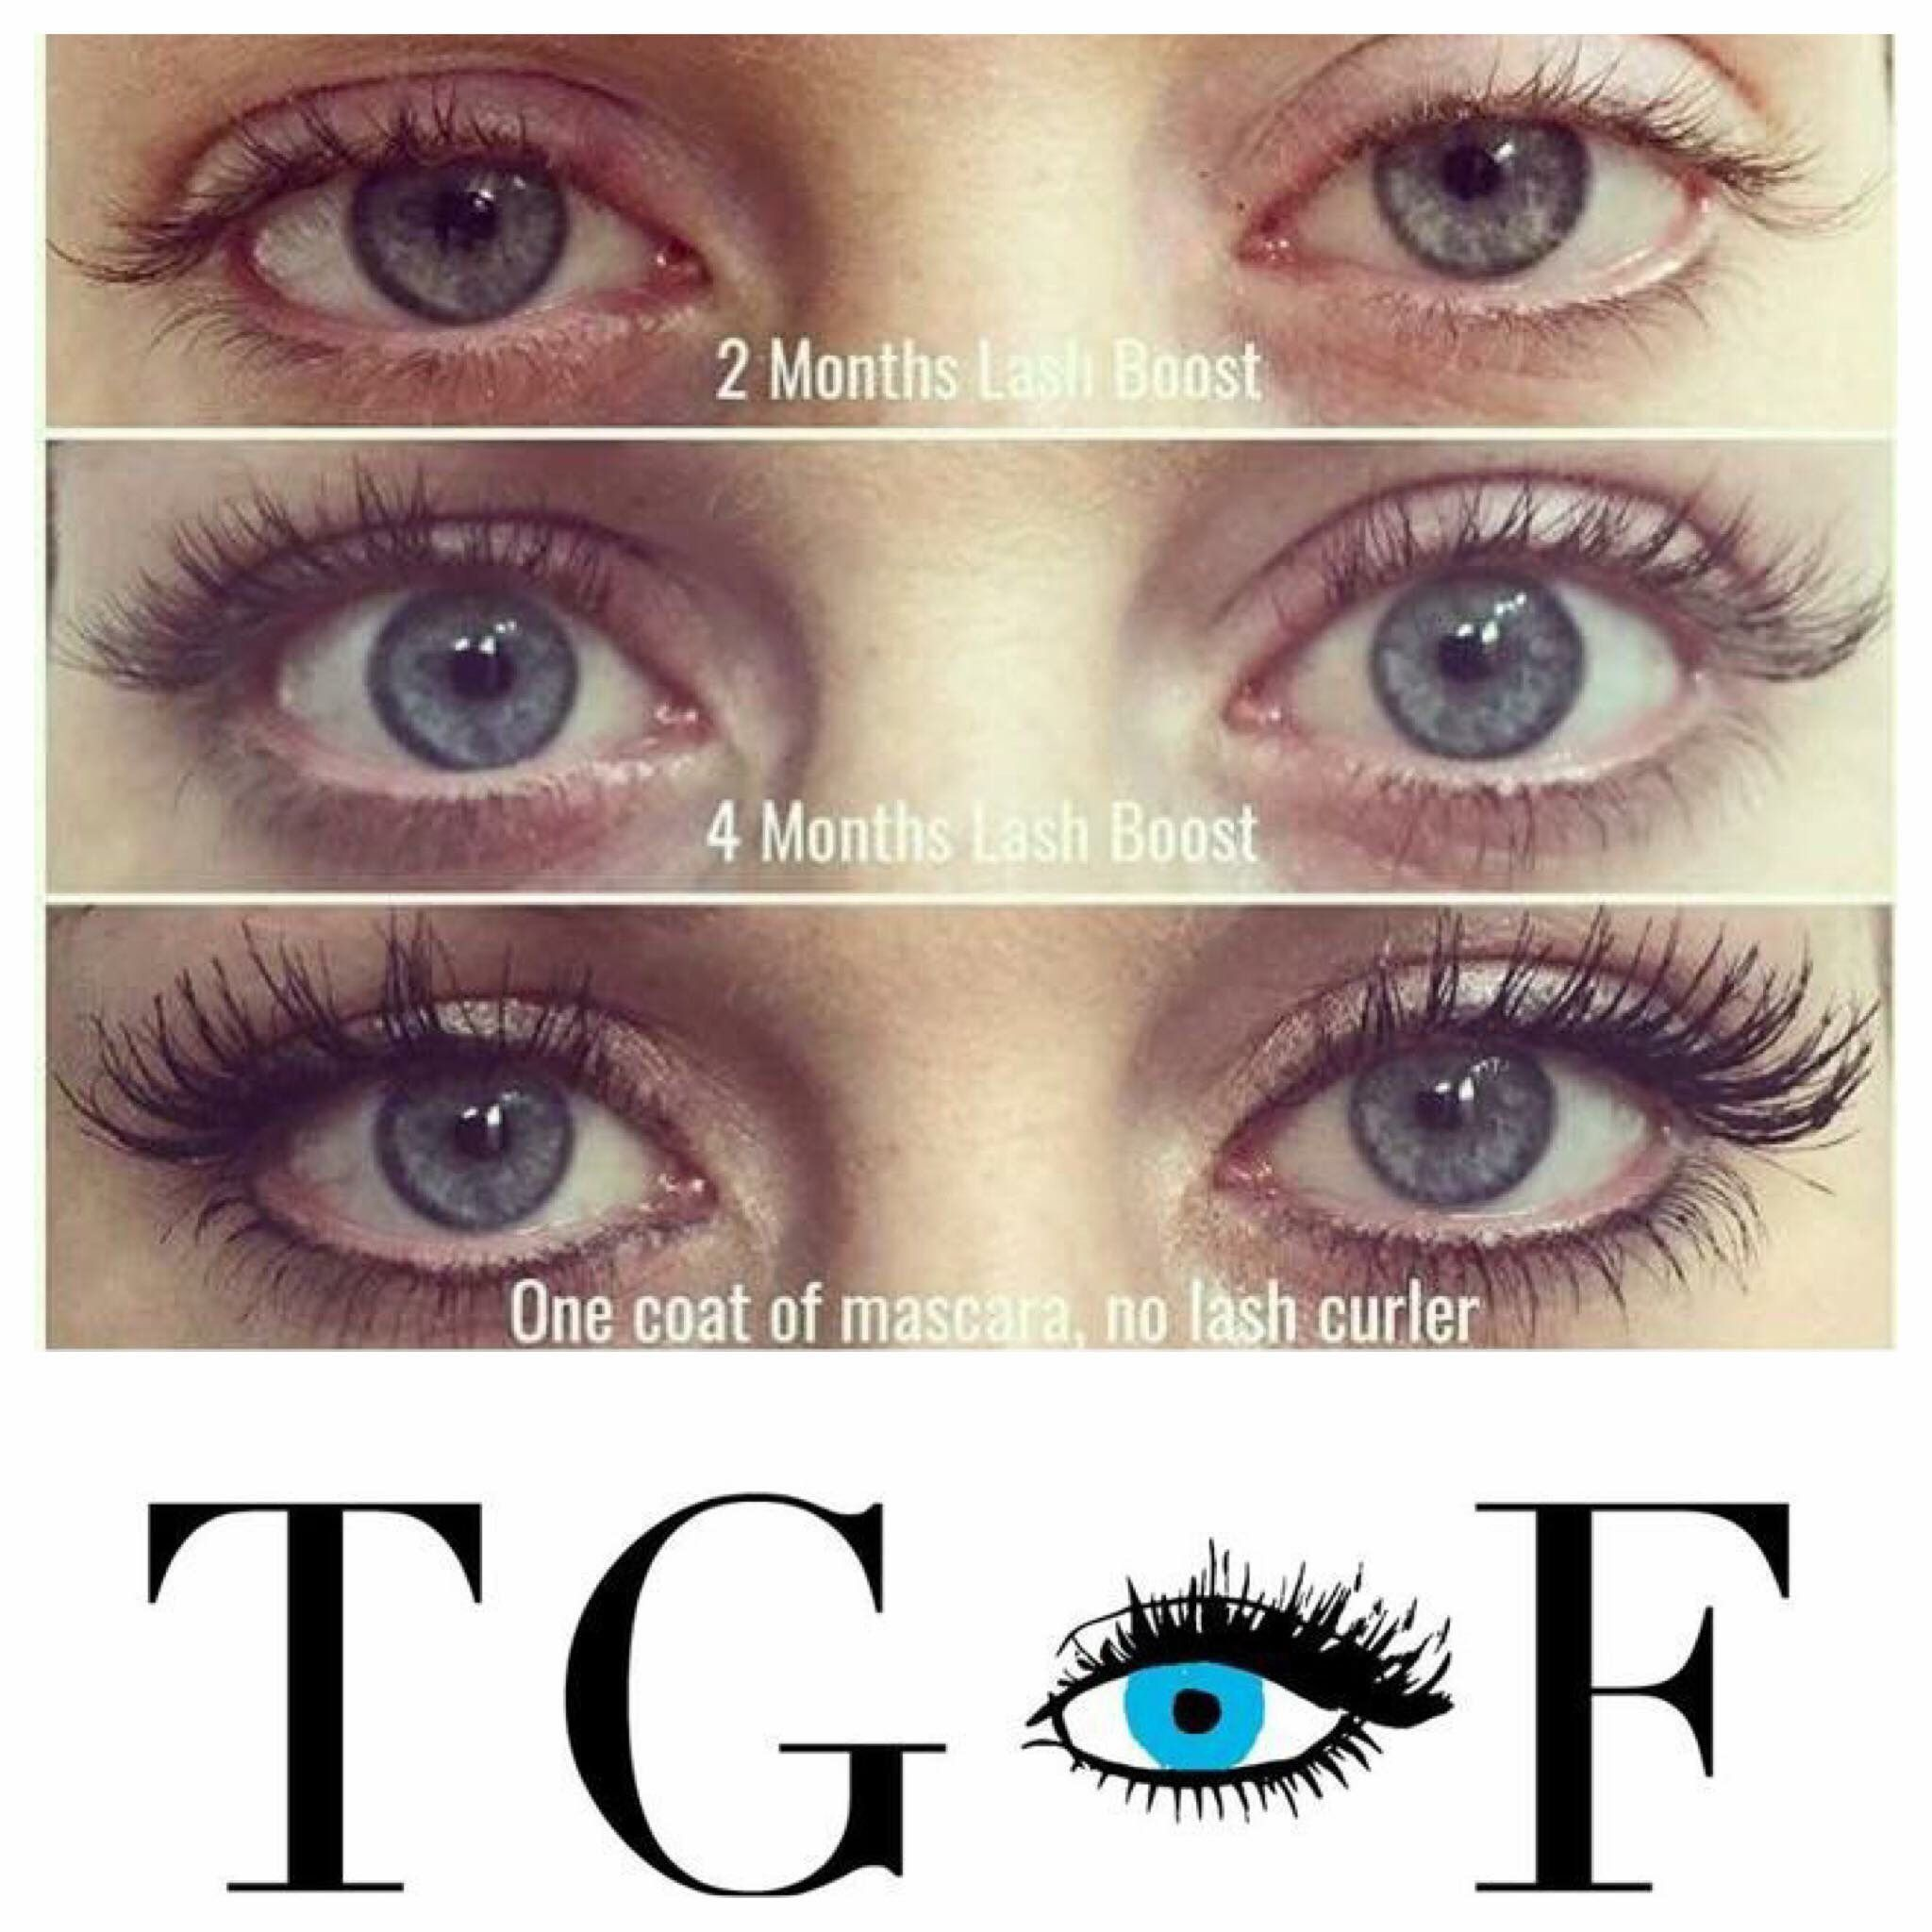 6b722da151b Lash Boost! Proof is in the pictures... PM me if you want to try it. 60 day  love it guarantee or your money back. Yes, that means you can try it and ...